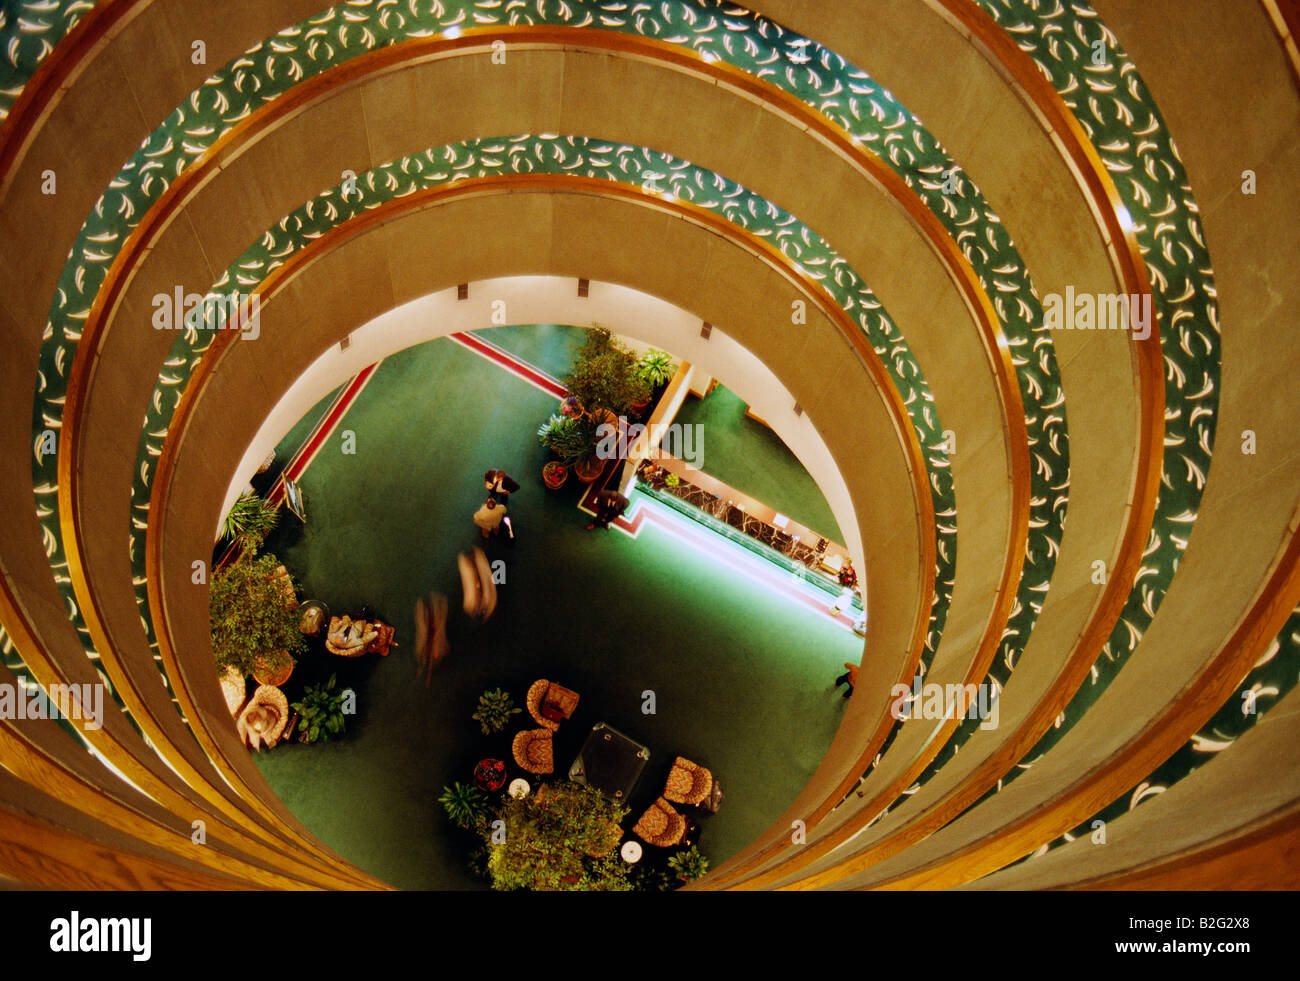 Hotel lobby viewed from circular, open, atricum above - Stock Image